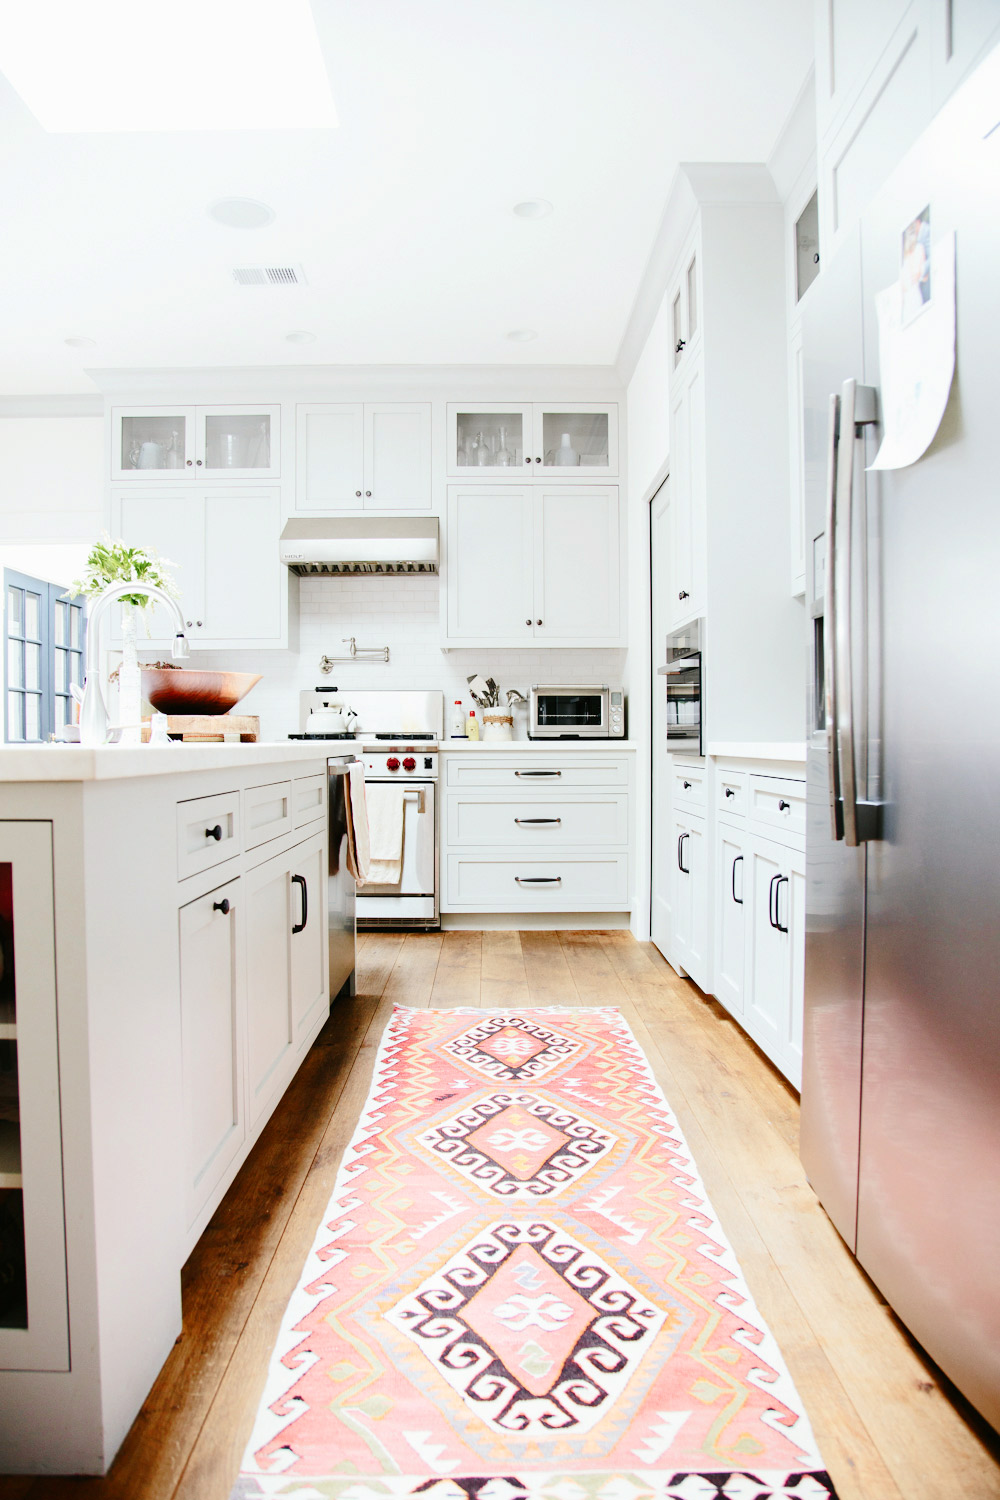 Vintage Persian Kilim Amp Turkish Rugs In The Kitchen